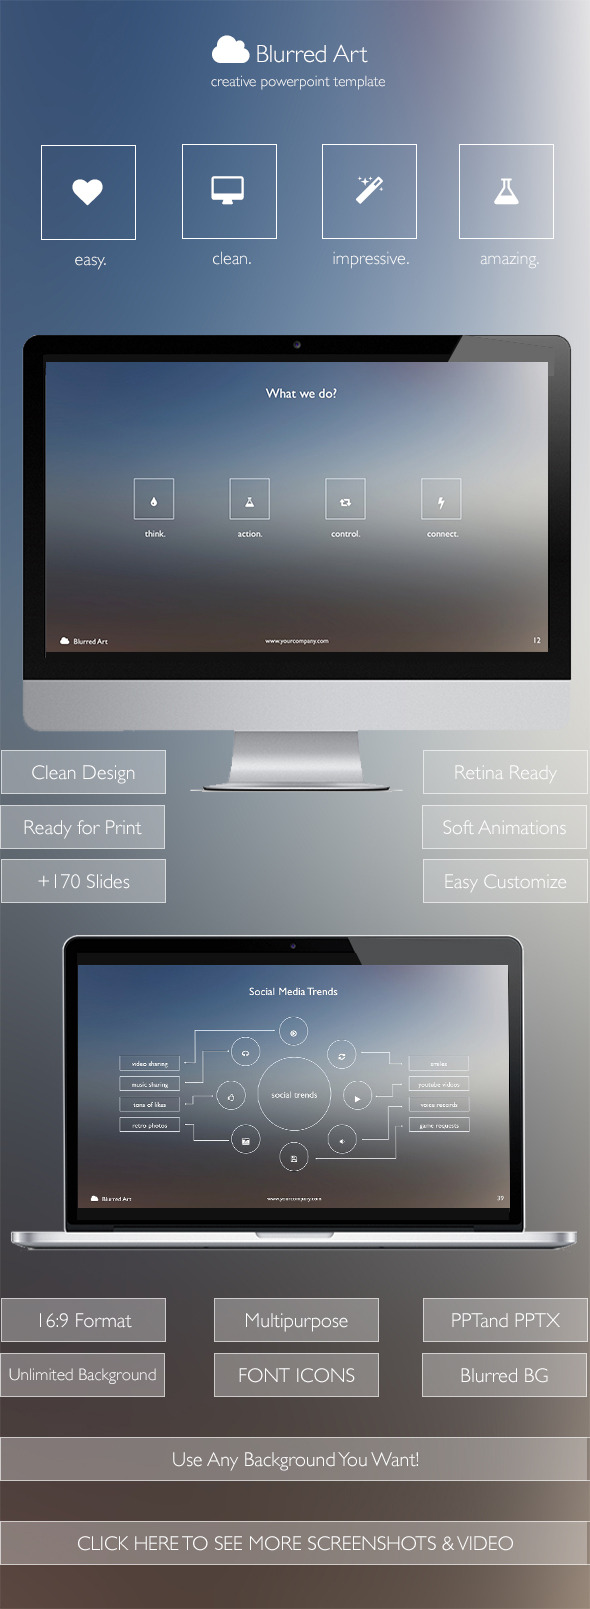 Blurred art creative powerpoint template by vigitalart graphicriver blurred art creative powerpoint template creative powerpoint templates toneelgroepblik Gallery